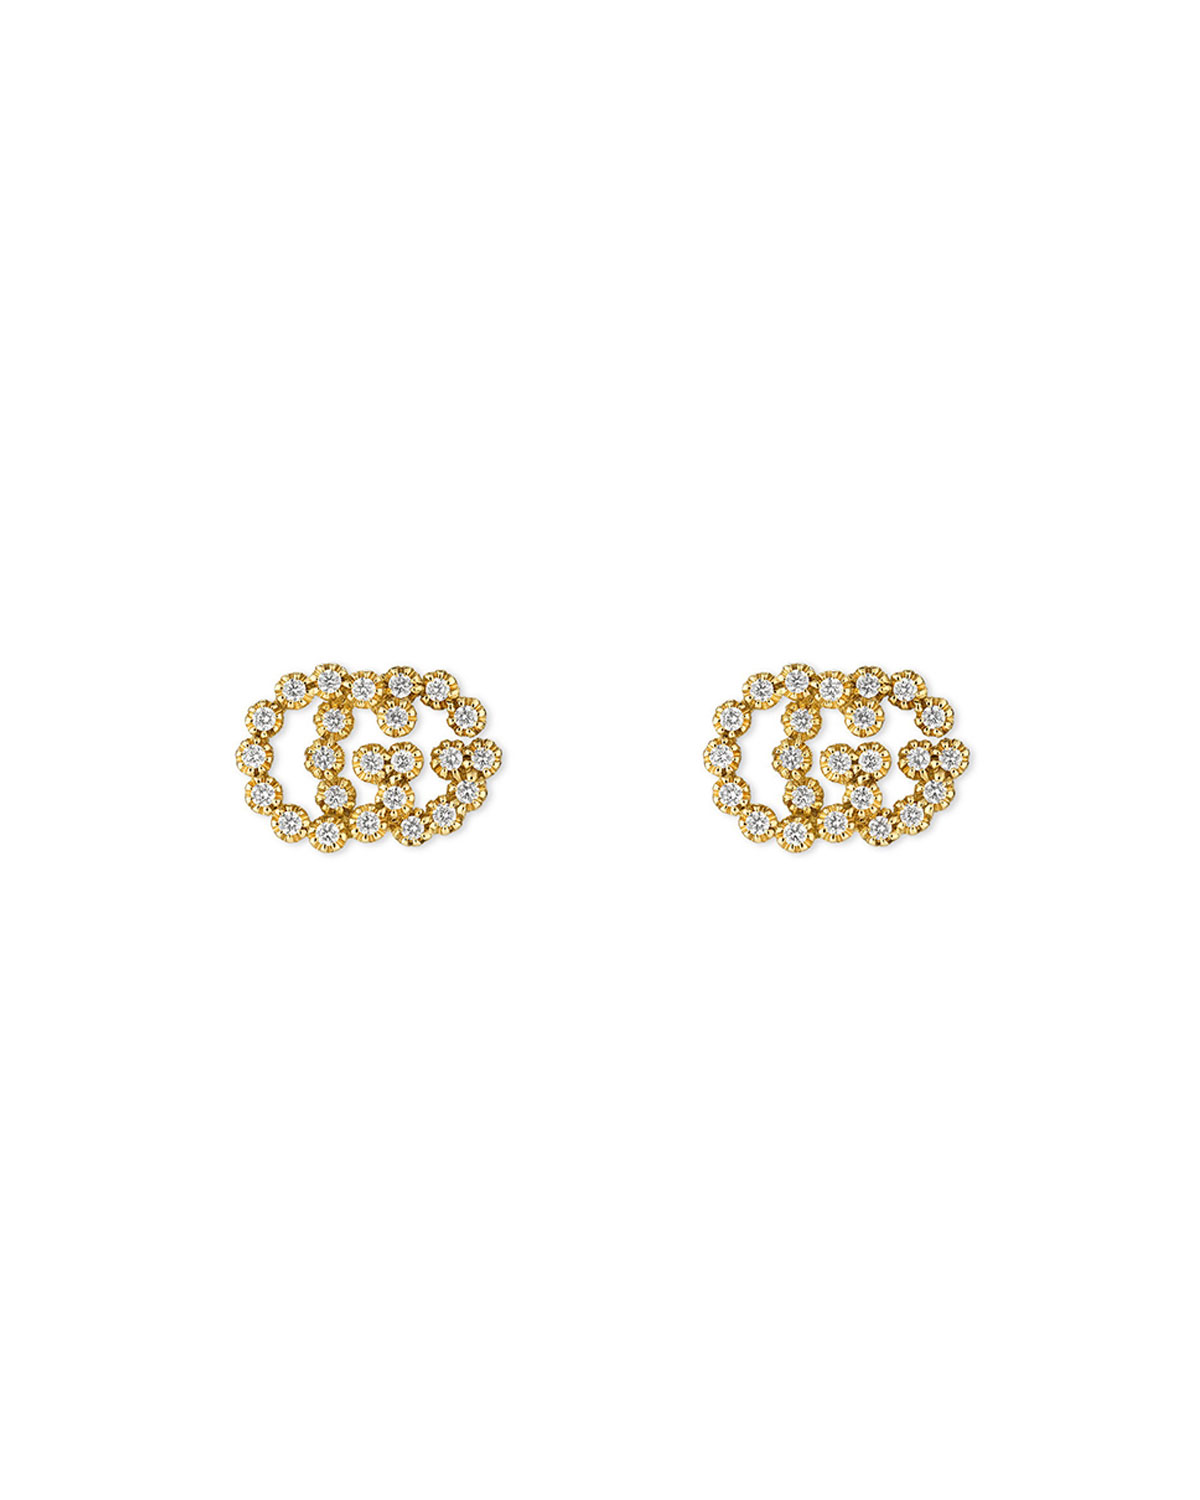 c4474c0173b Gucci GG Running 18k Stud Earrings w  Diamonds